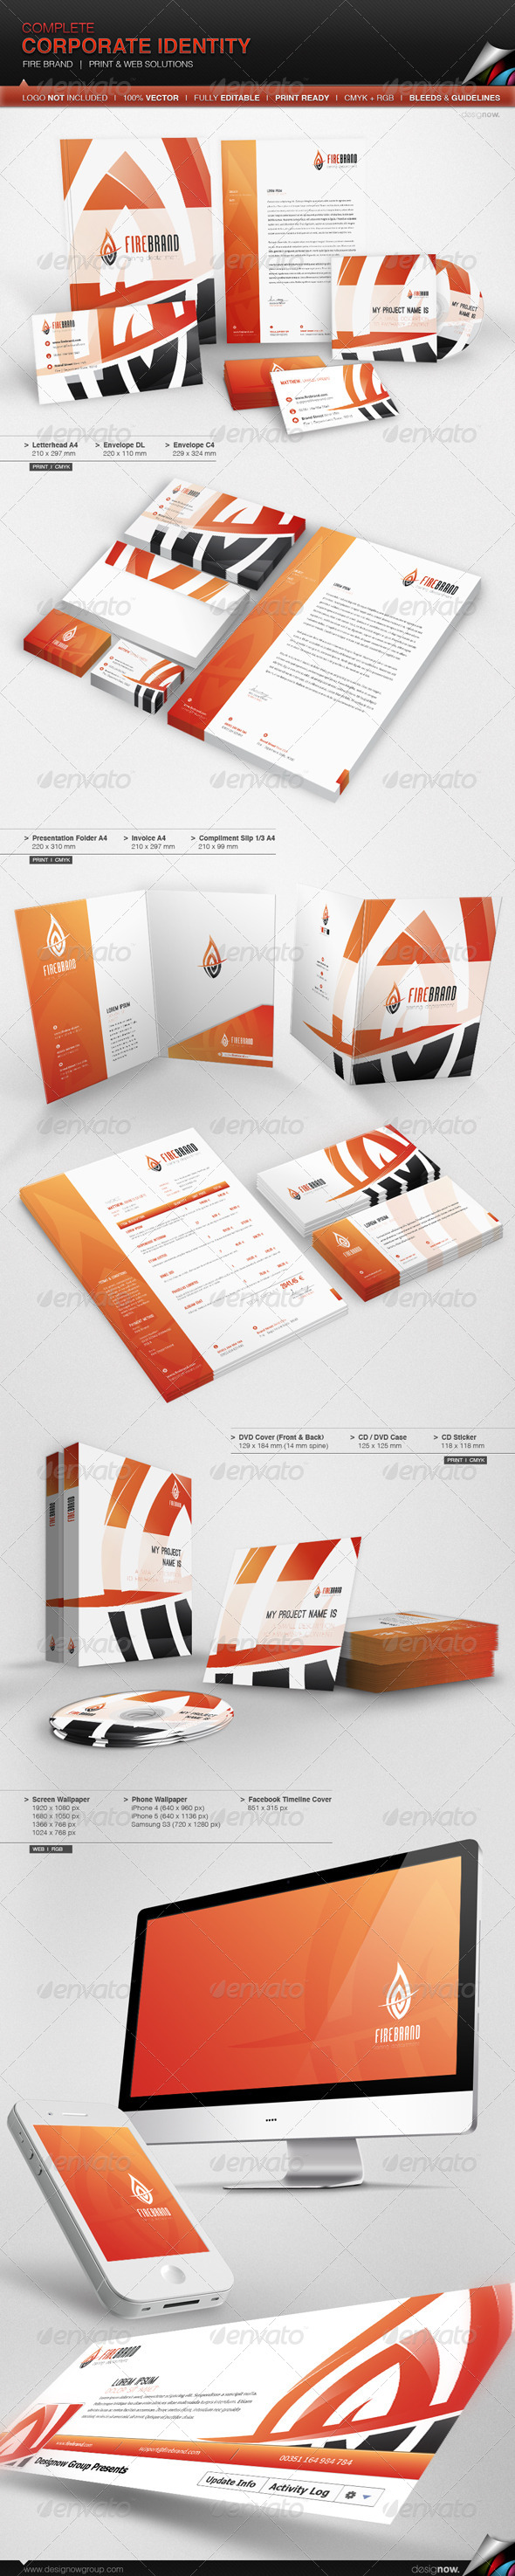 Corporate Identity - Fire Brand - Stationery Print Templates